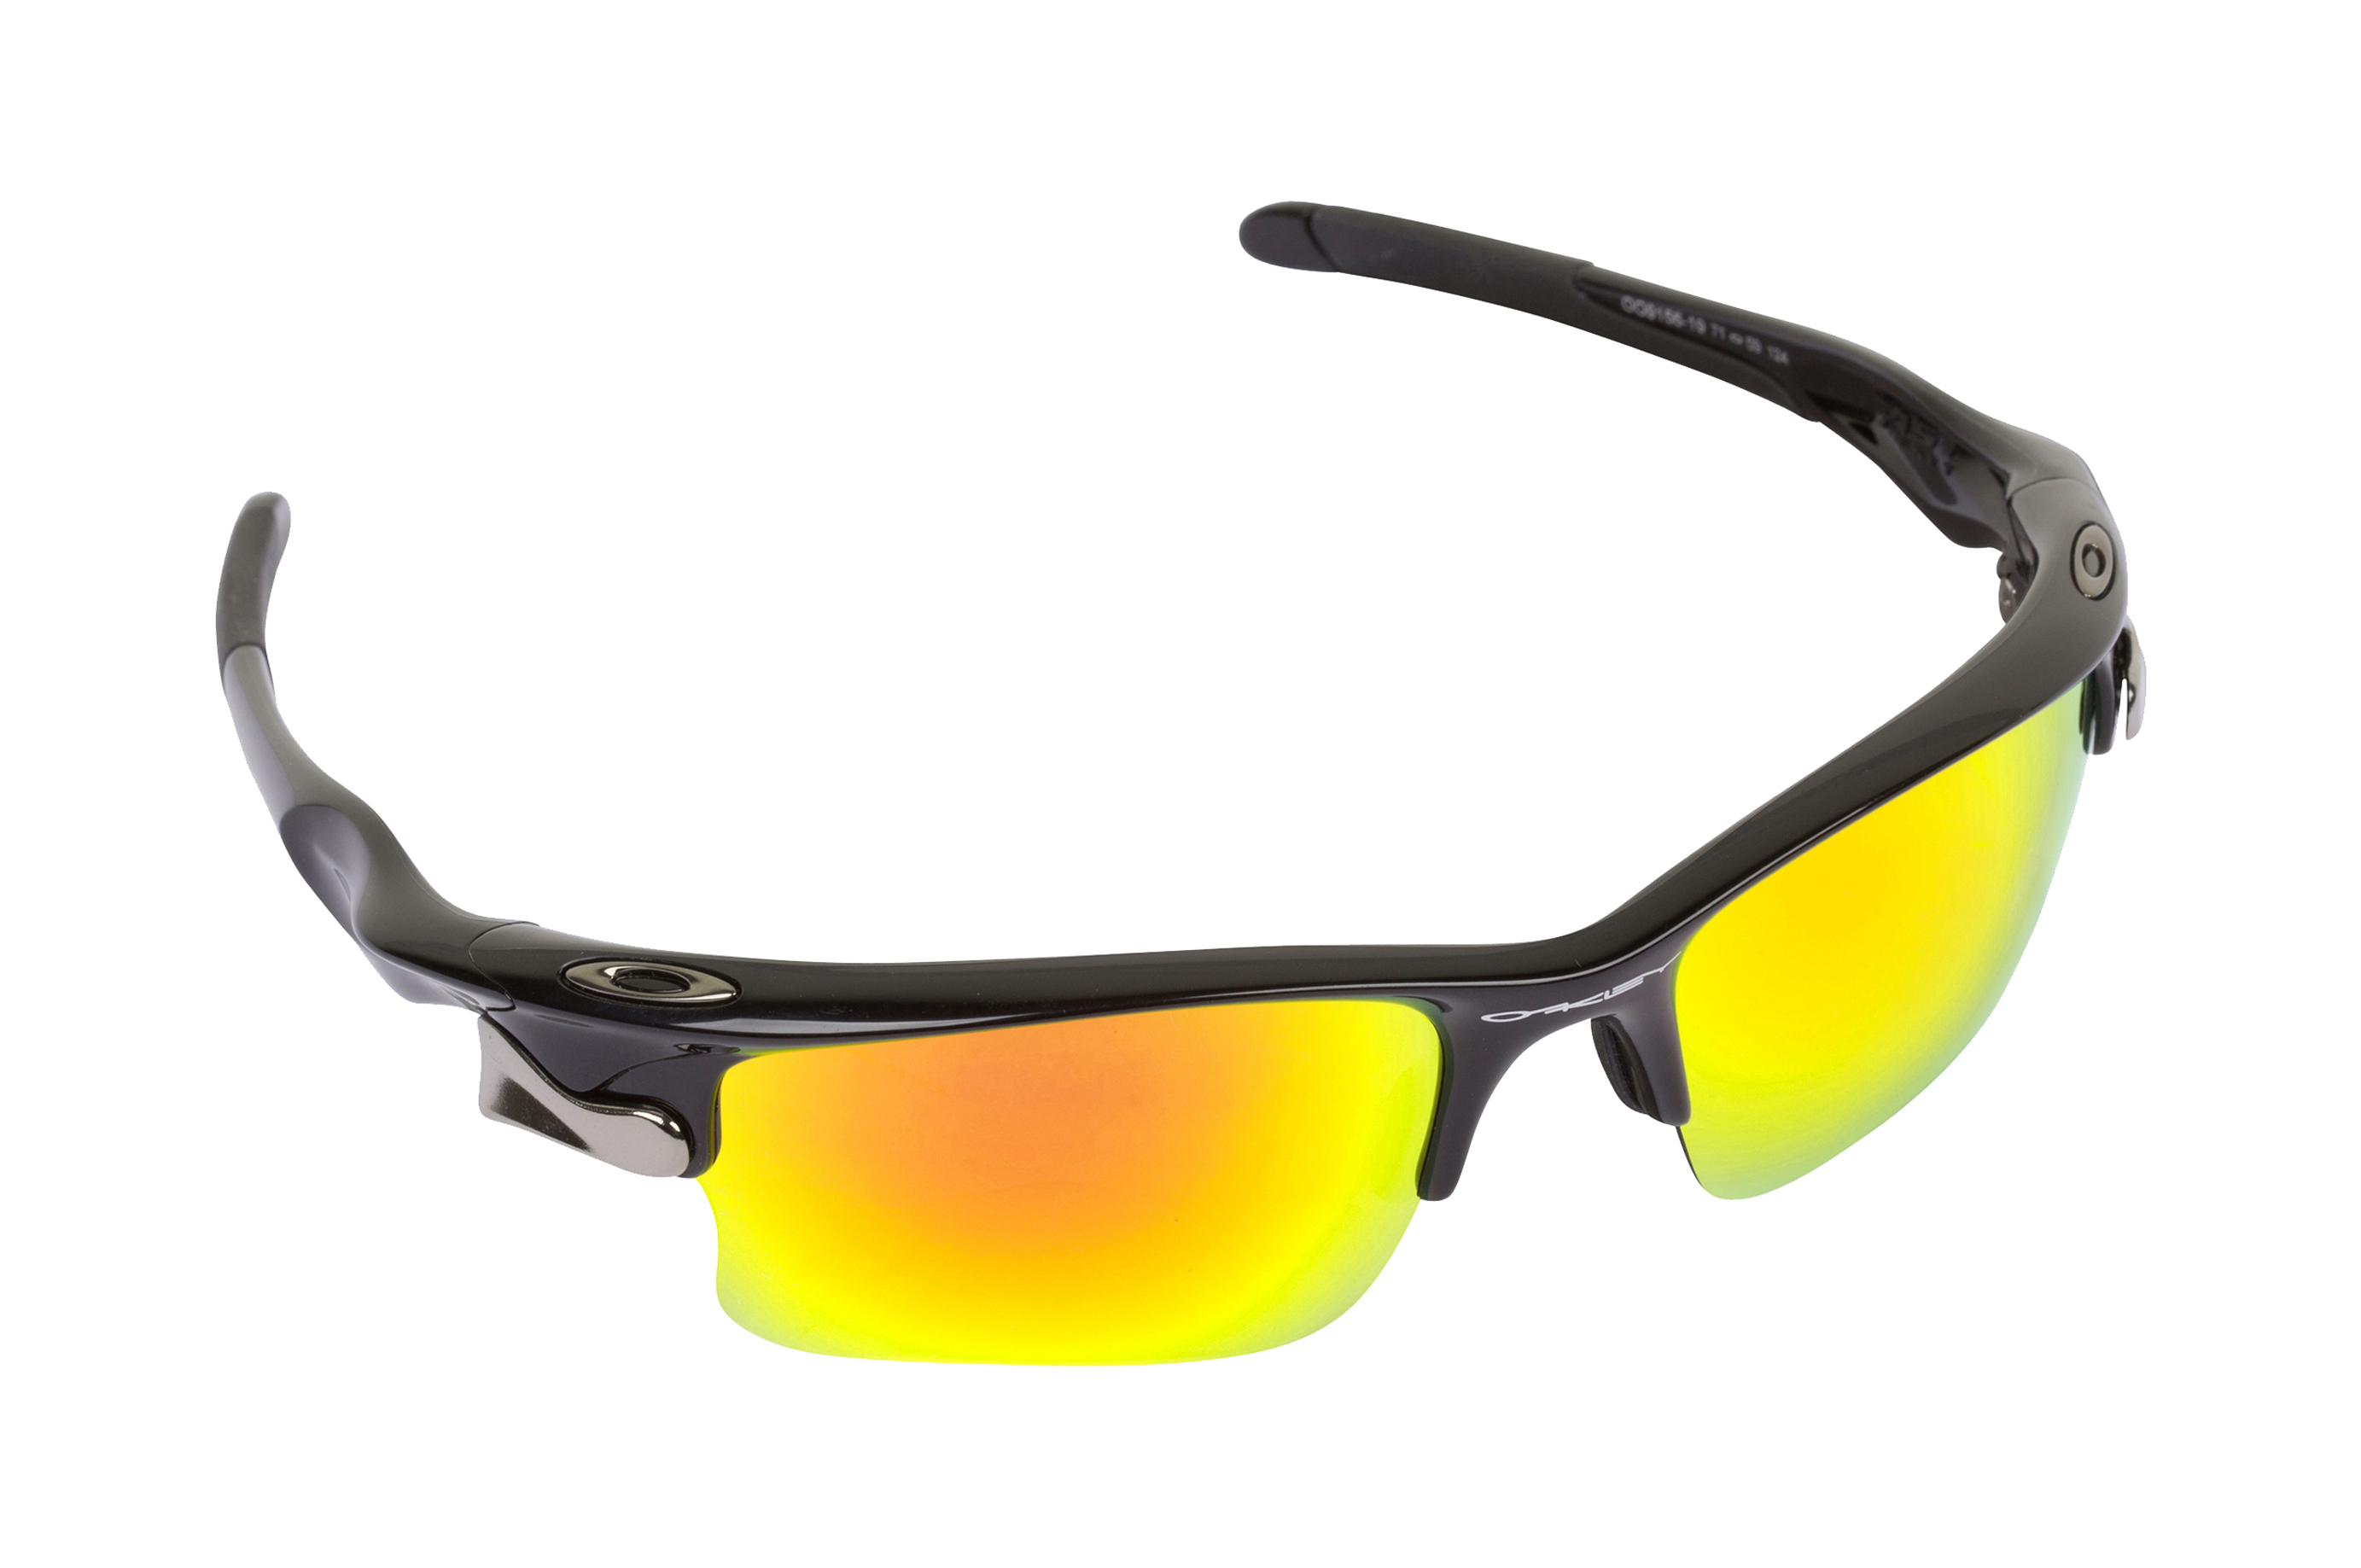 4434025e5c Fast Jacket XL Asian Fit Replacement Lenses by SEEK OPTICS to fit ...